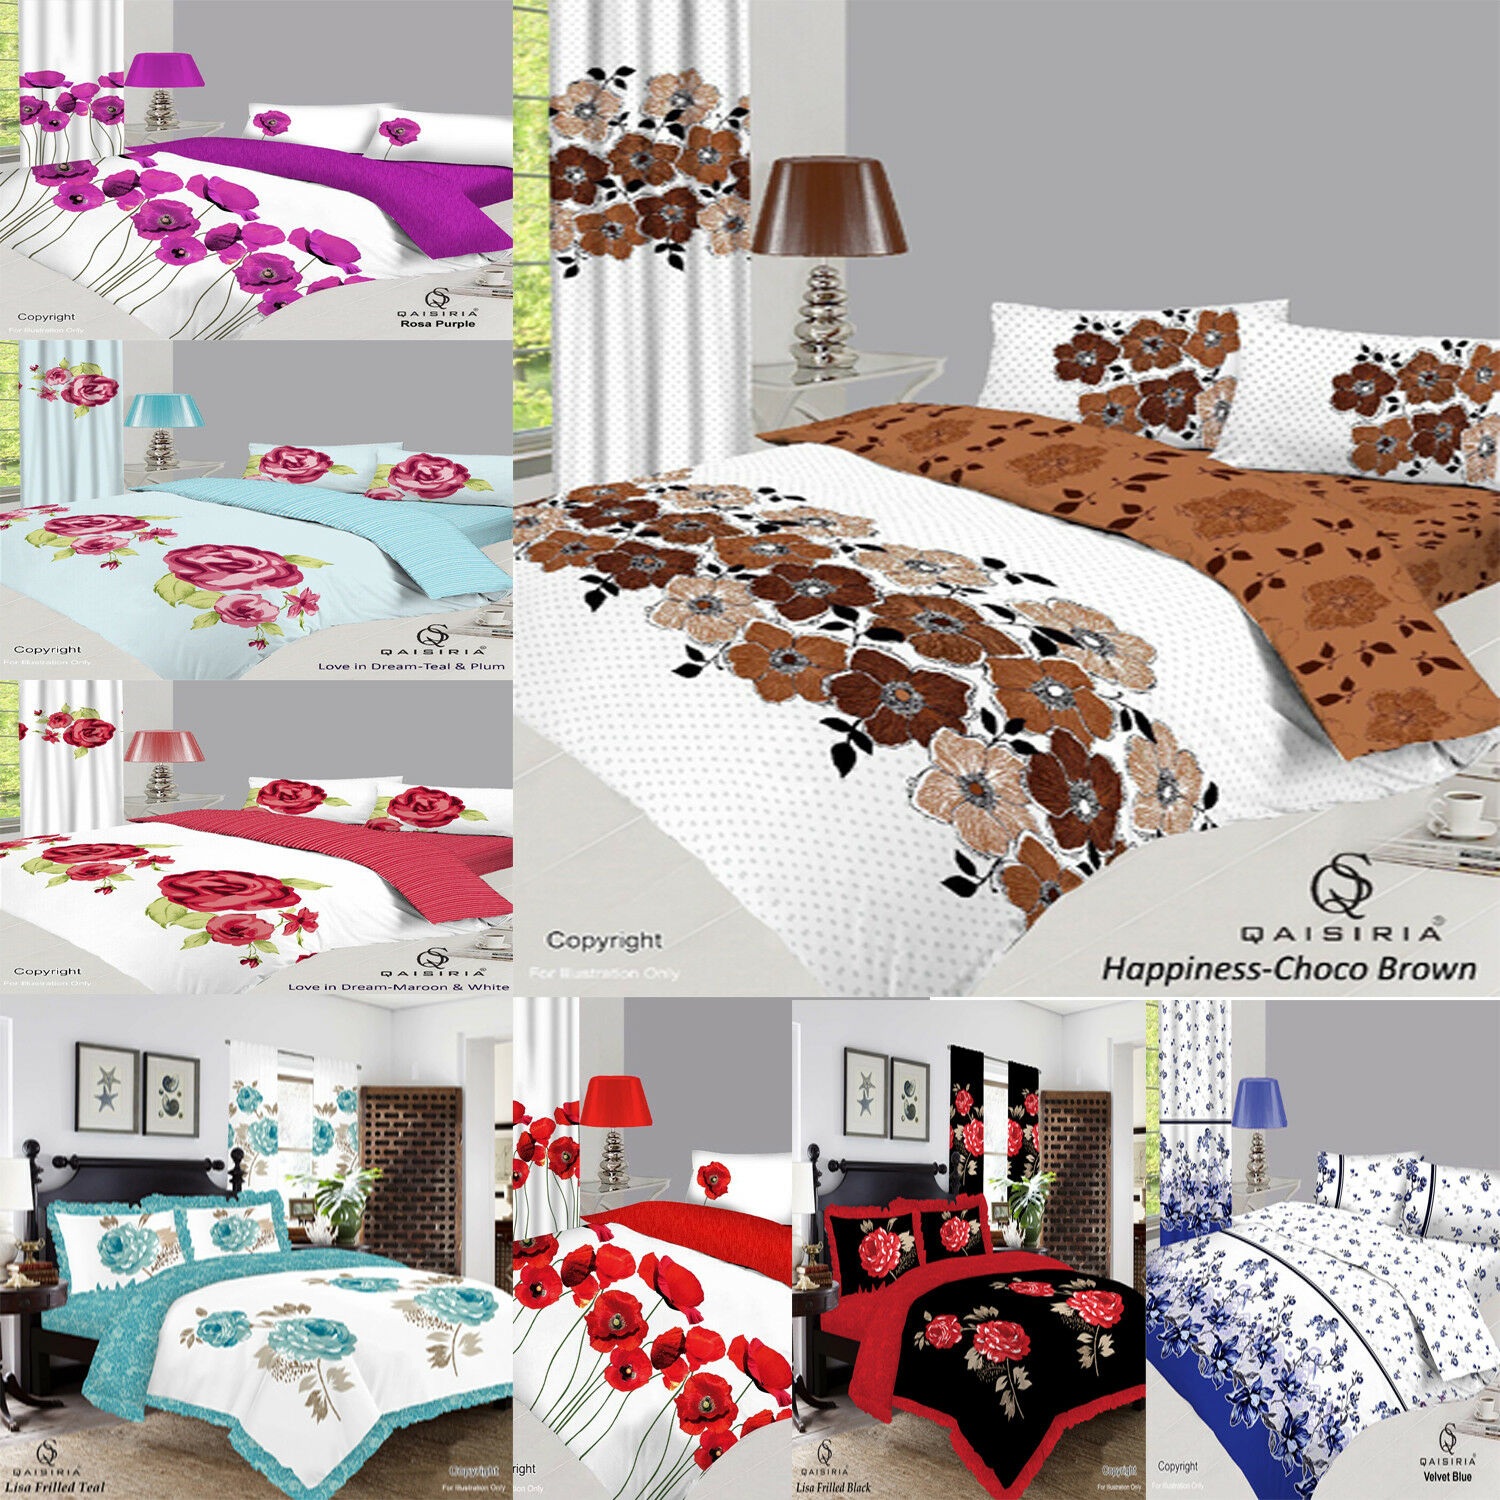 Elements Duvet Cover Set with Pillowcases Cushion Cover and Curtains Bumper Set